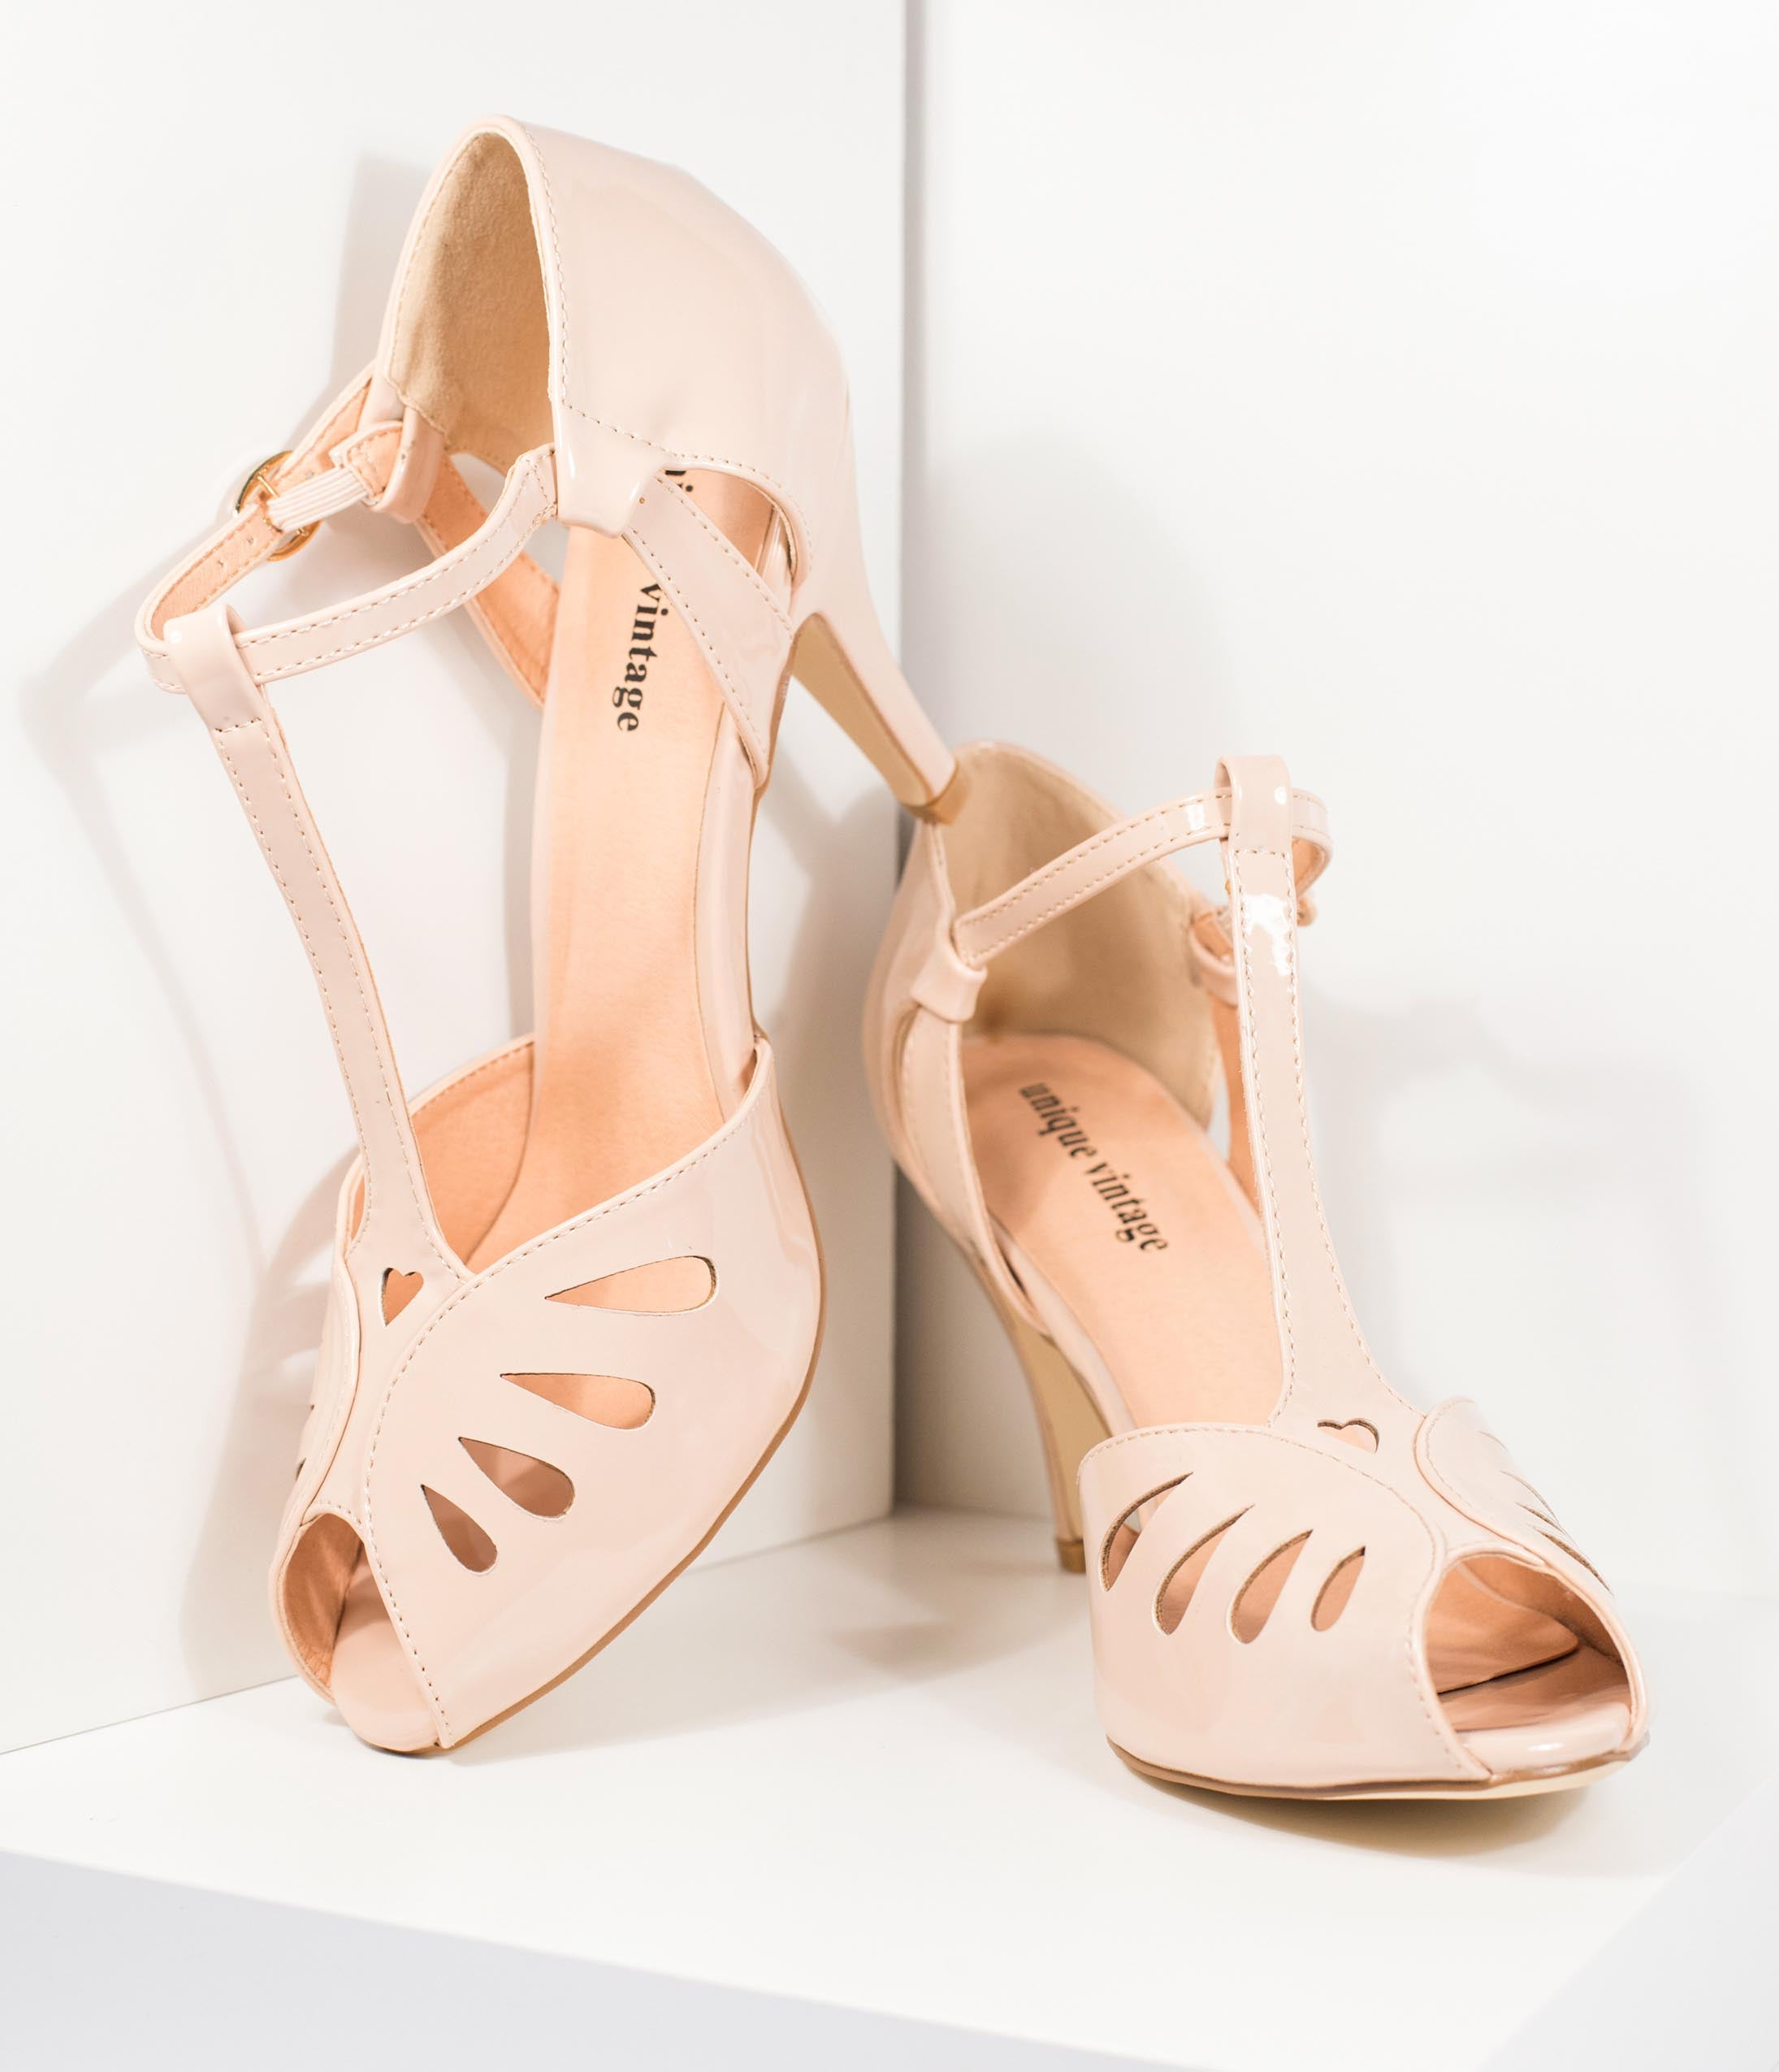 1950s Style Shoes | Heels, Flats, Boots Unique Vintage Beige Patent Leatherette T-Strap Everly Pumps $48.00 AT vintagedancer.com